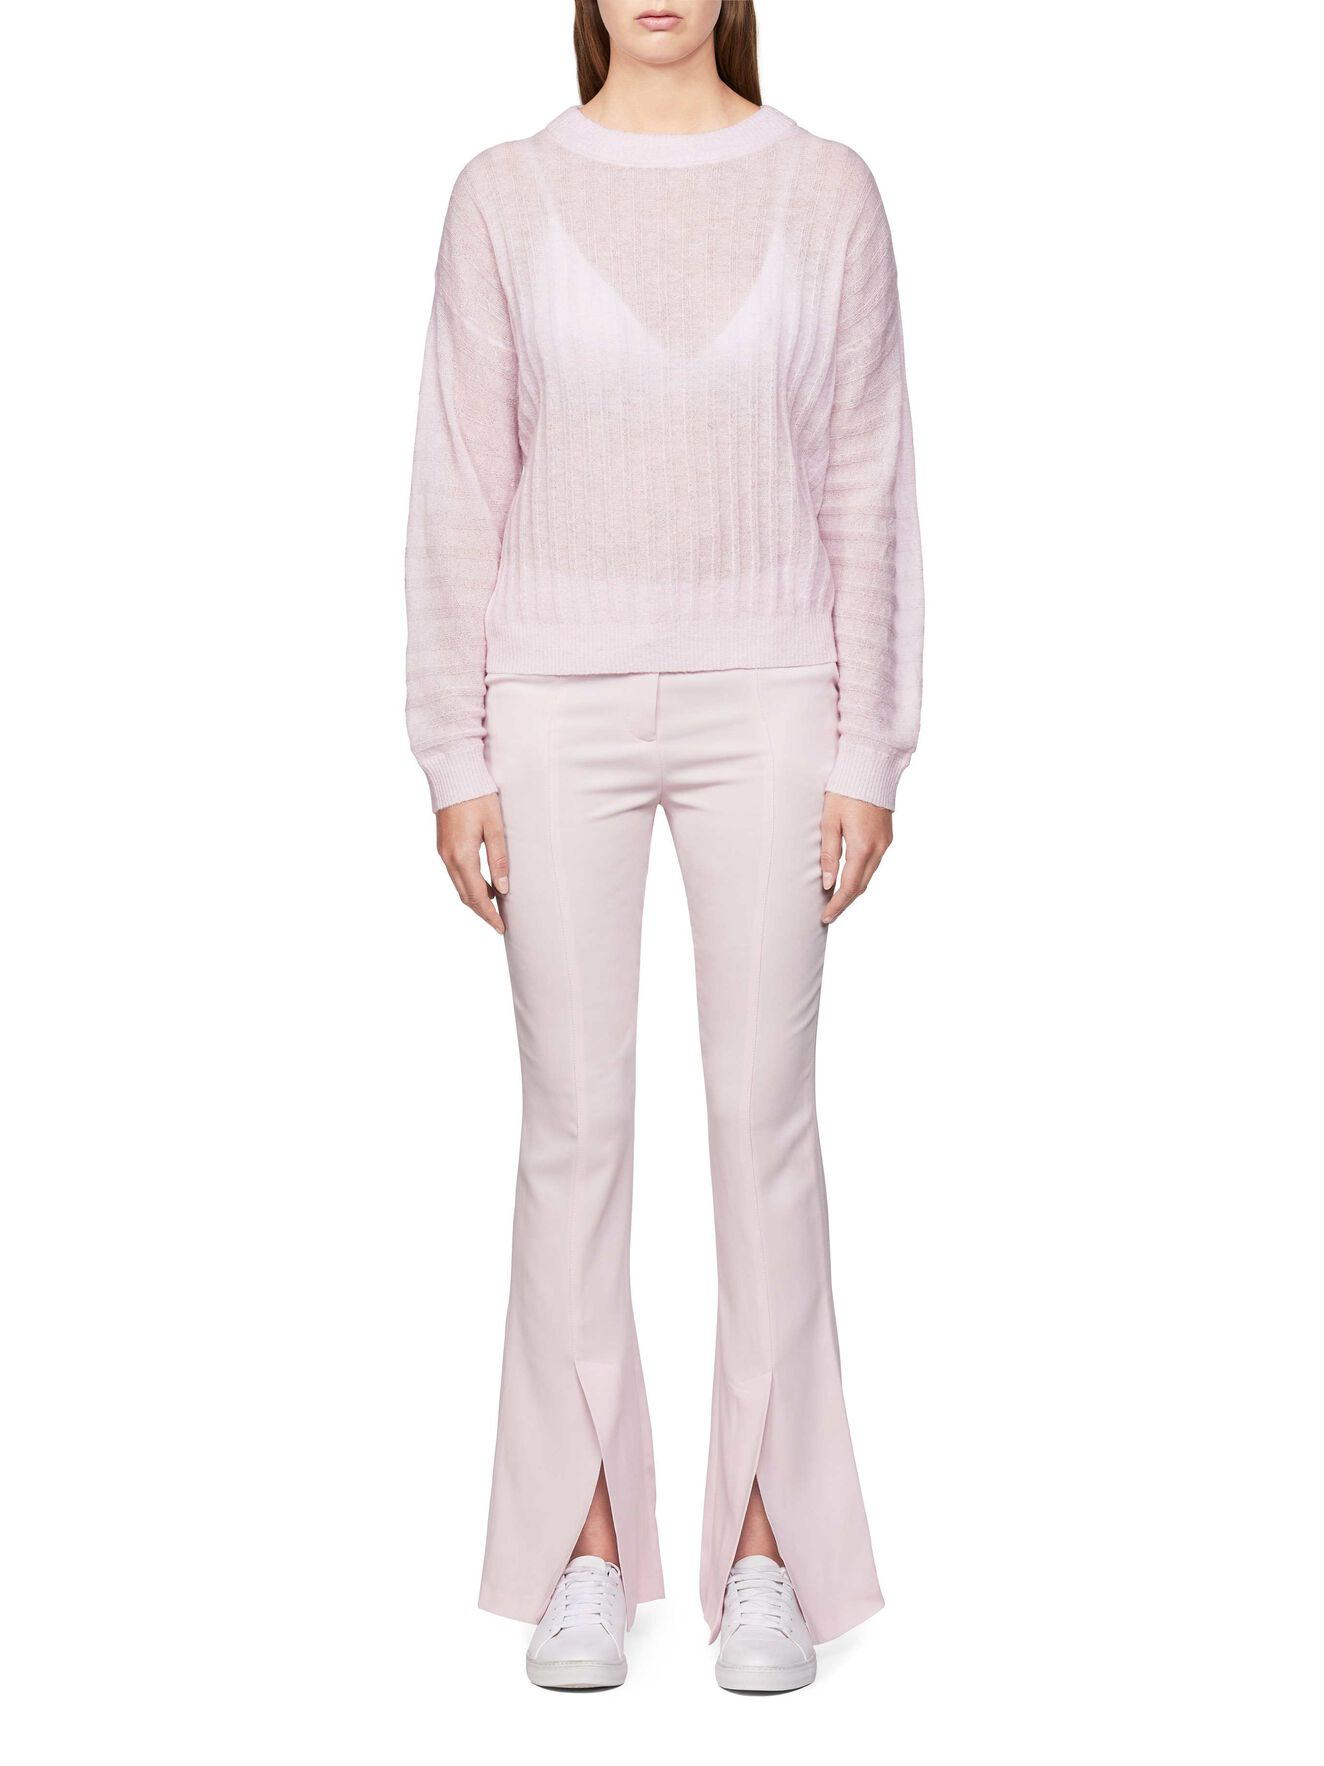 Galya Pullover in Pale Pink from Tiger of Sweden